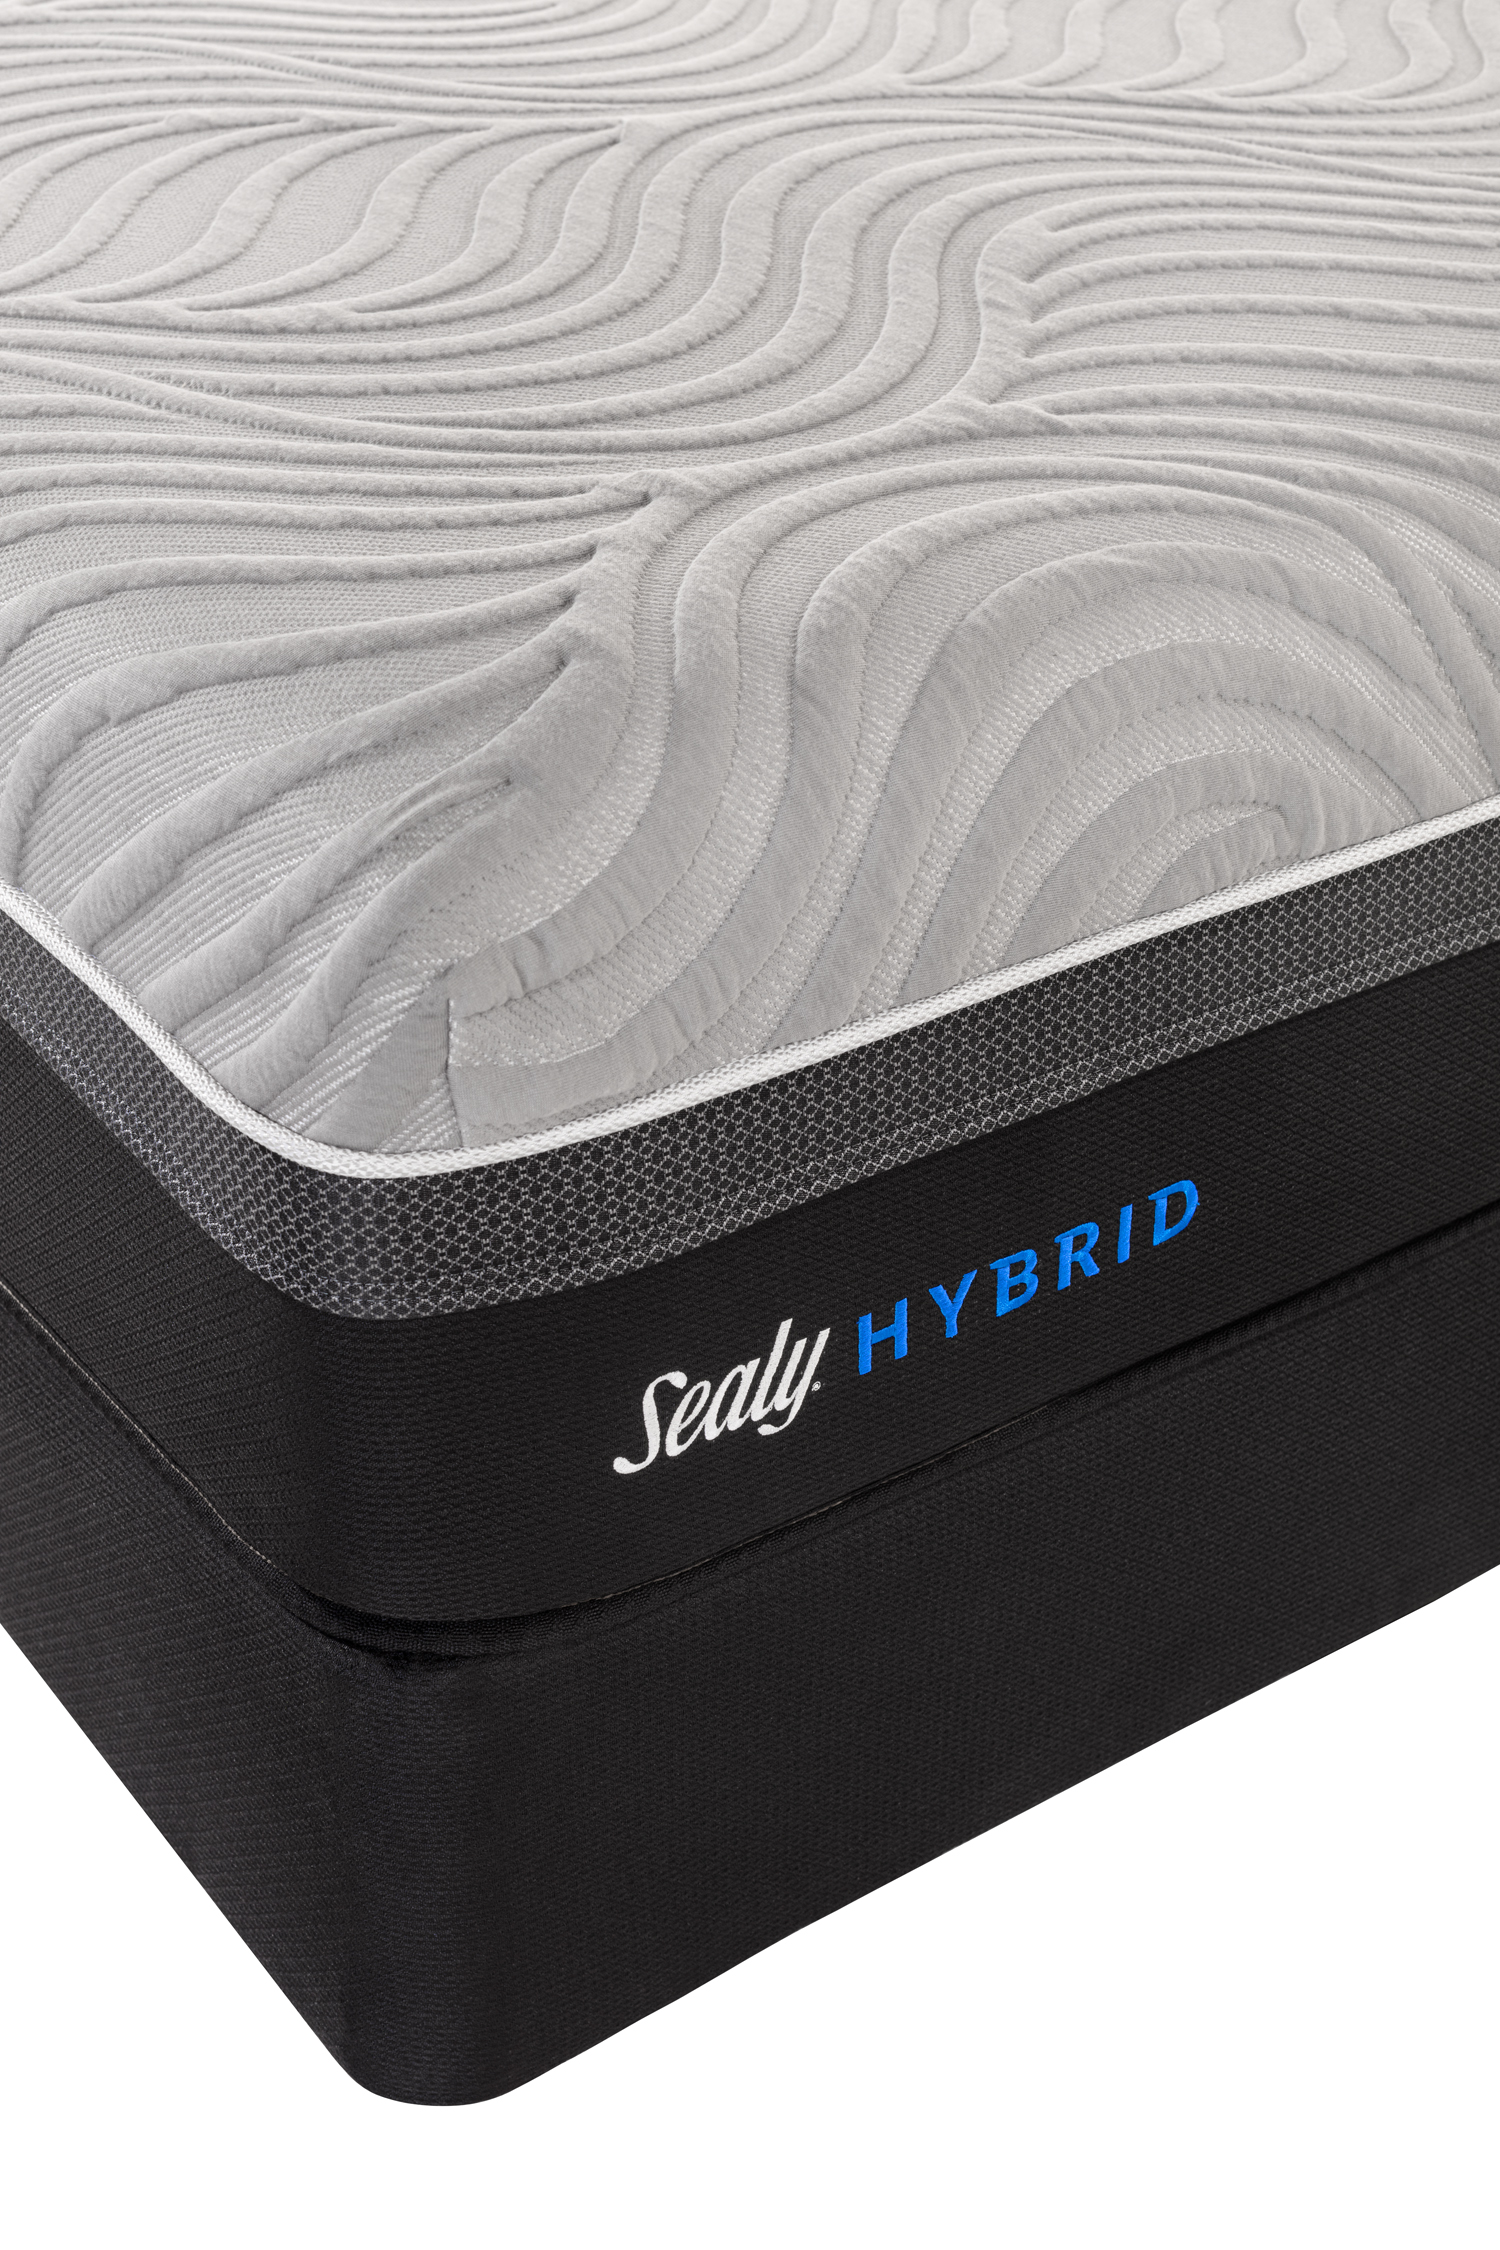 Sealy Performance Hybrid Copper Ii Cushion Firm